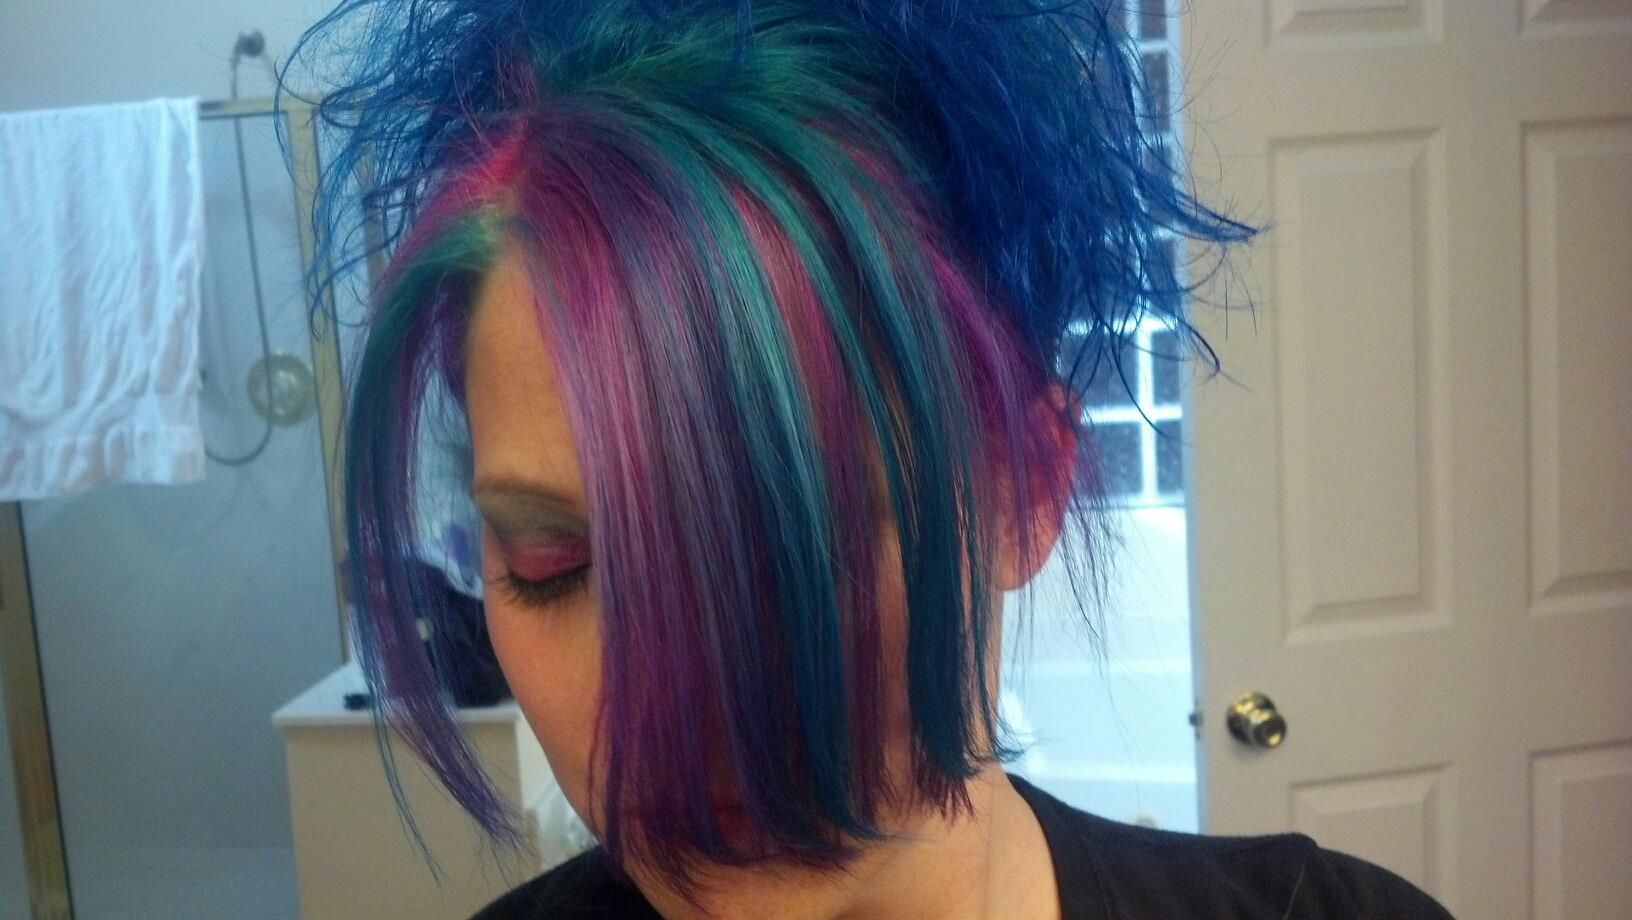 Ion Brilliance Brights In Sky Blue Teal Aqua And Fuschia This